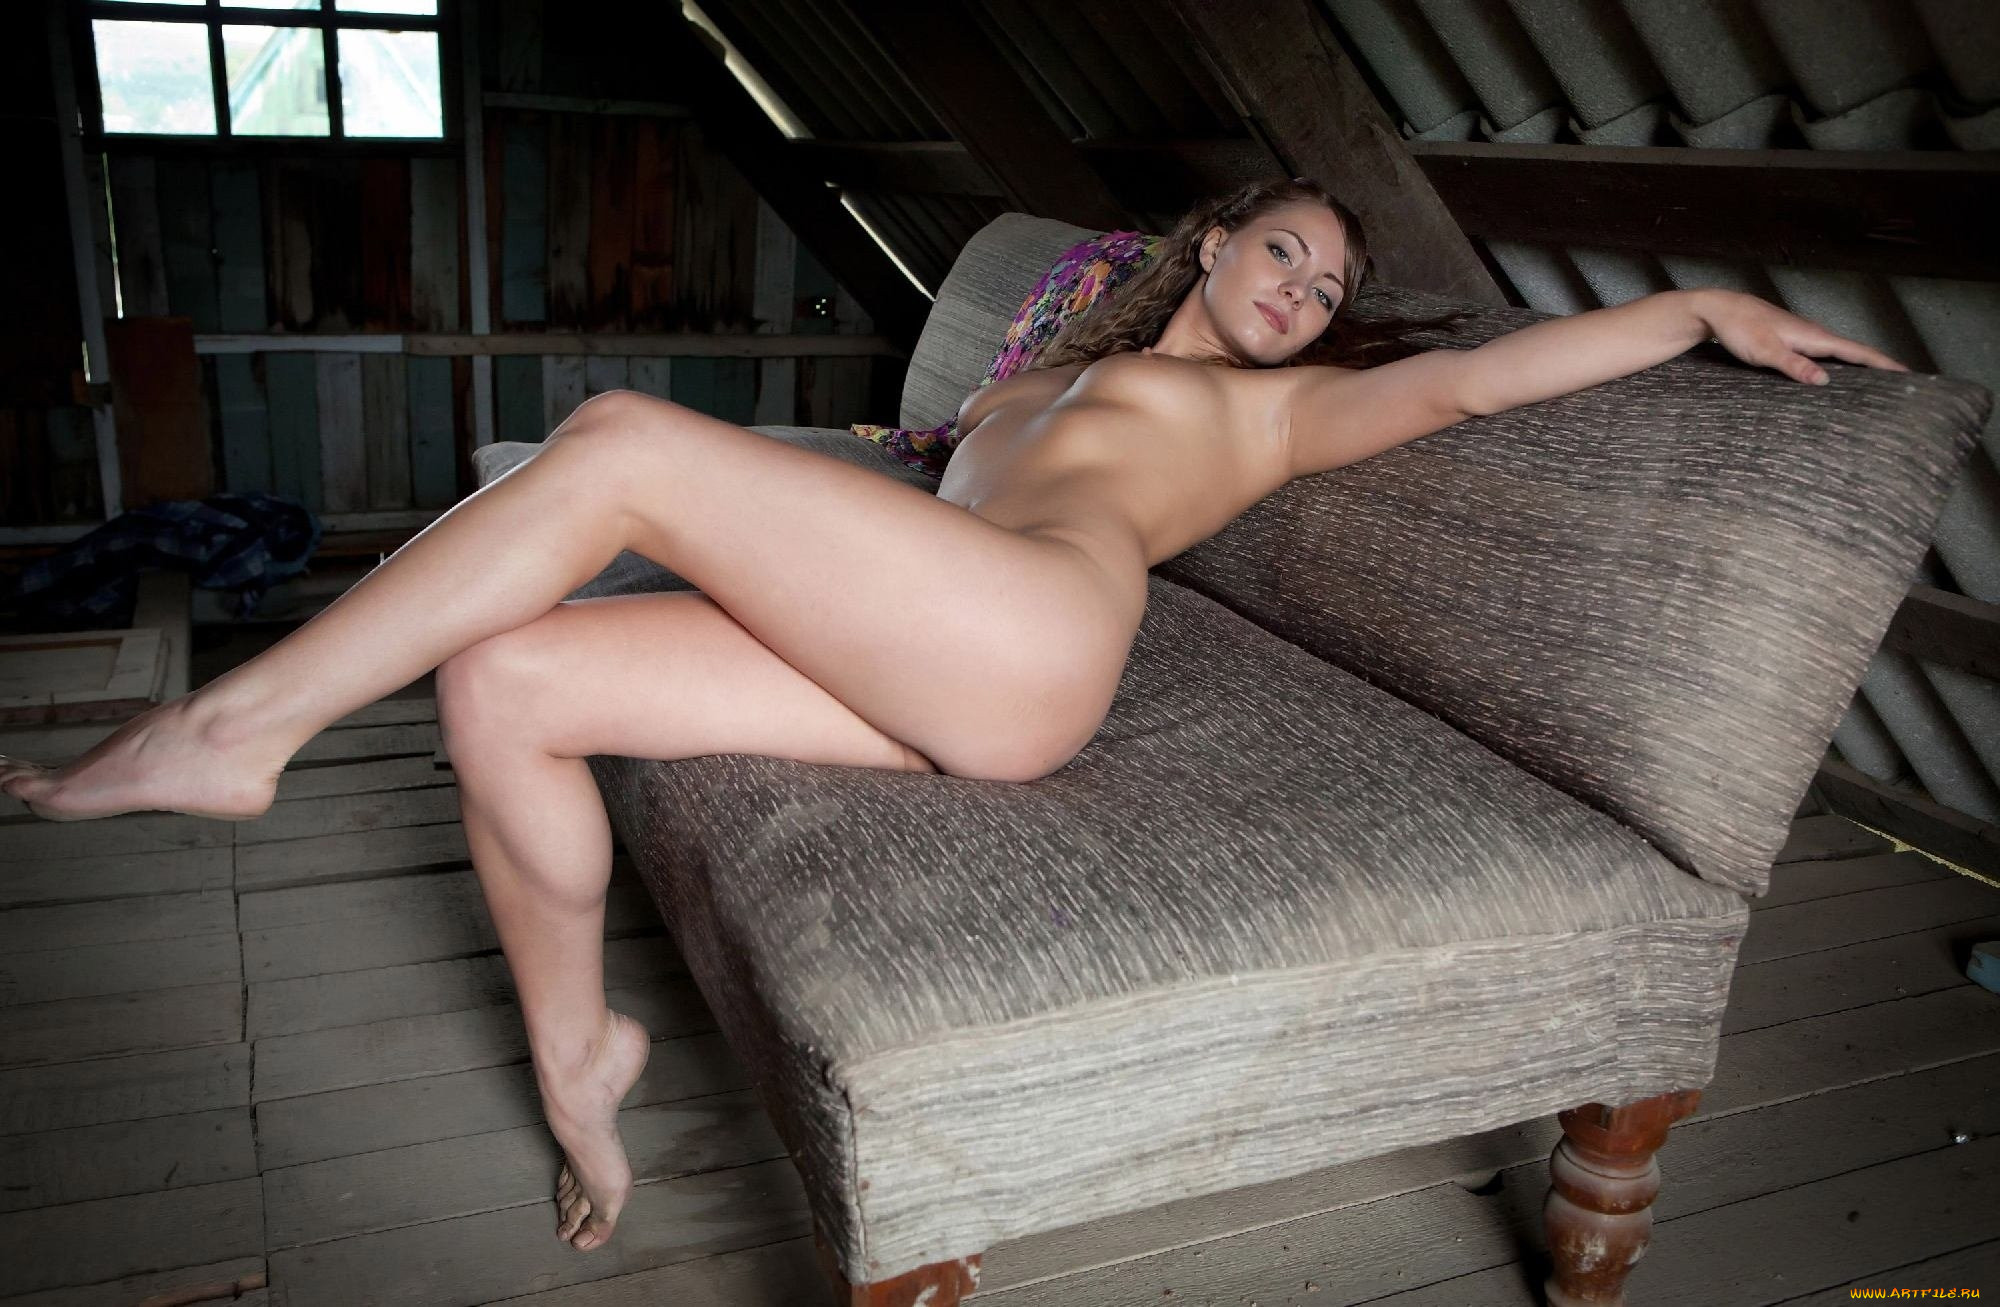 tami-in-sex-pictures-girl-fat-thighs